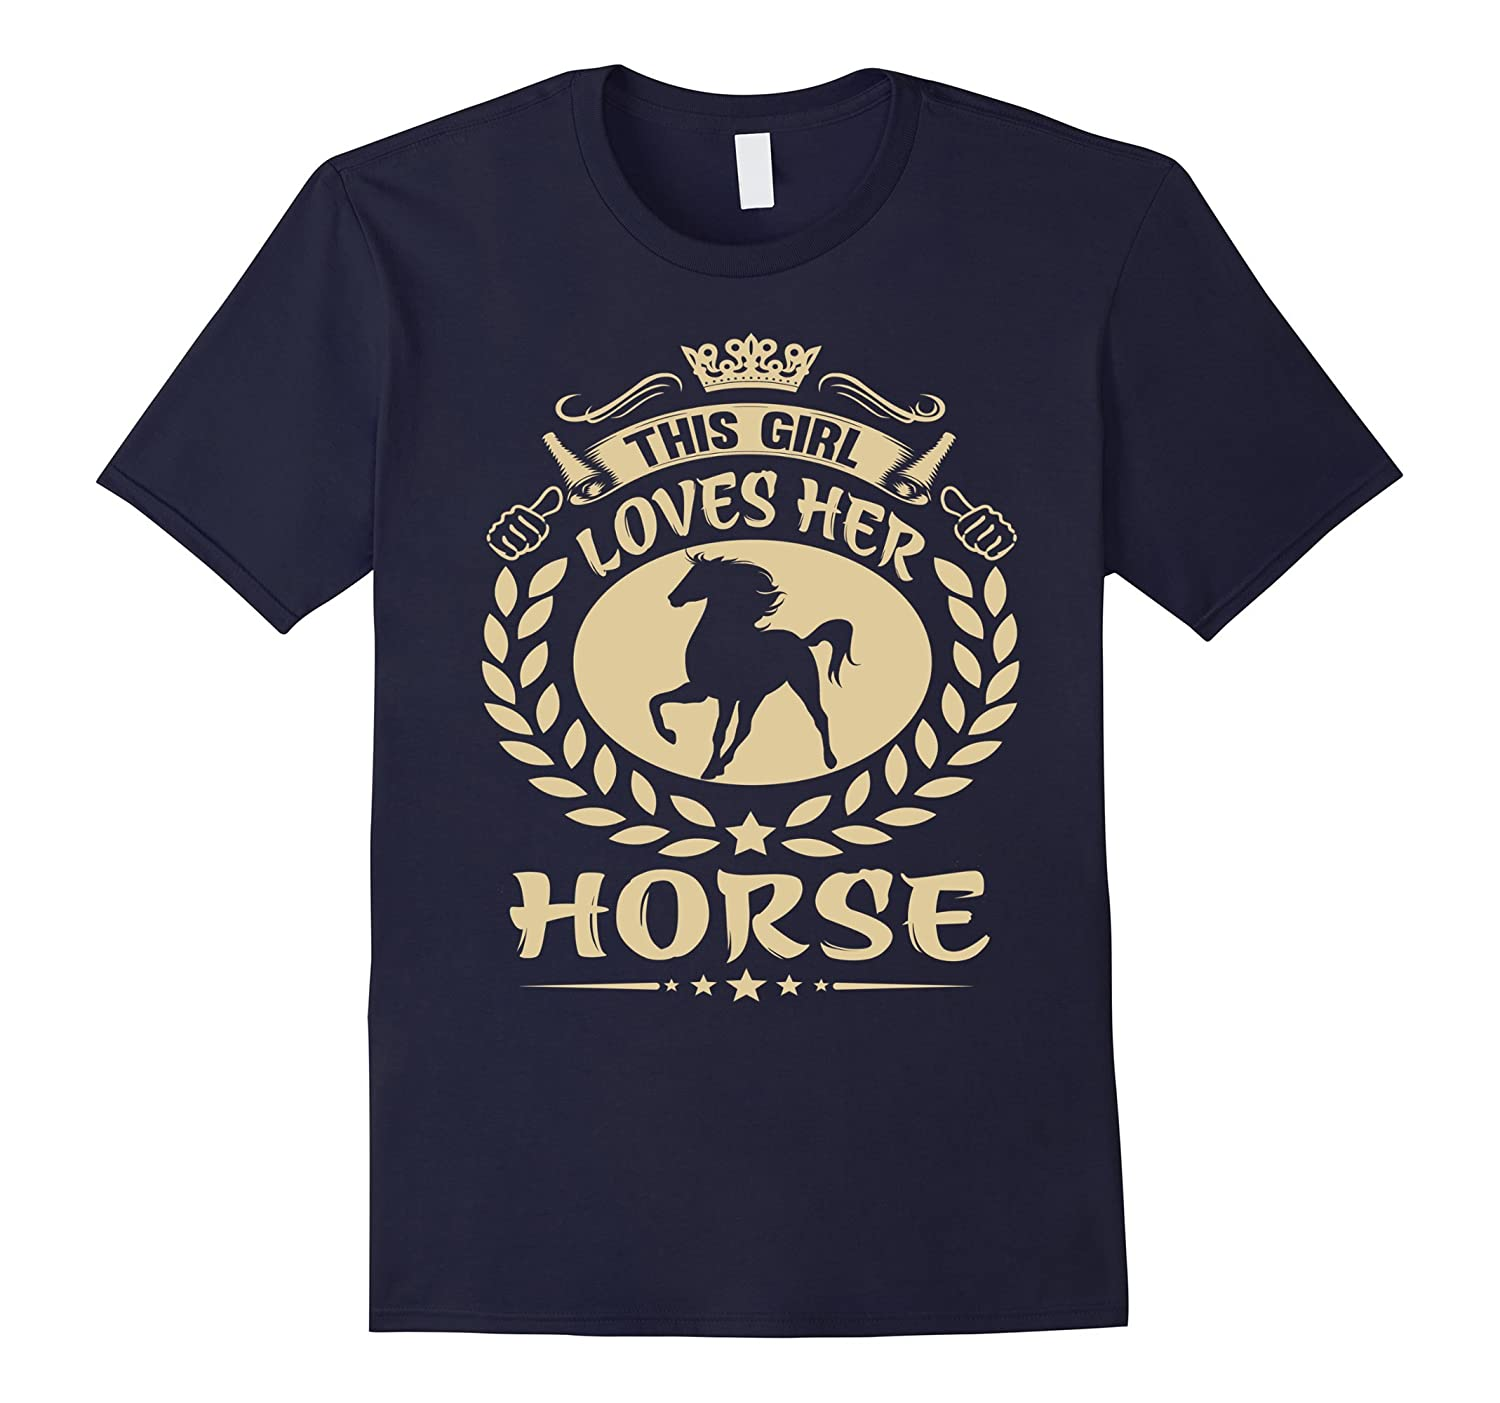 THIS GIRL LOVES HER HORSE Tshirt-Vaci